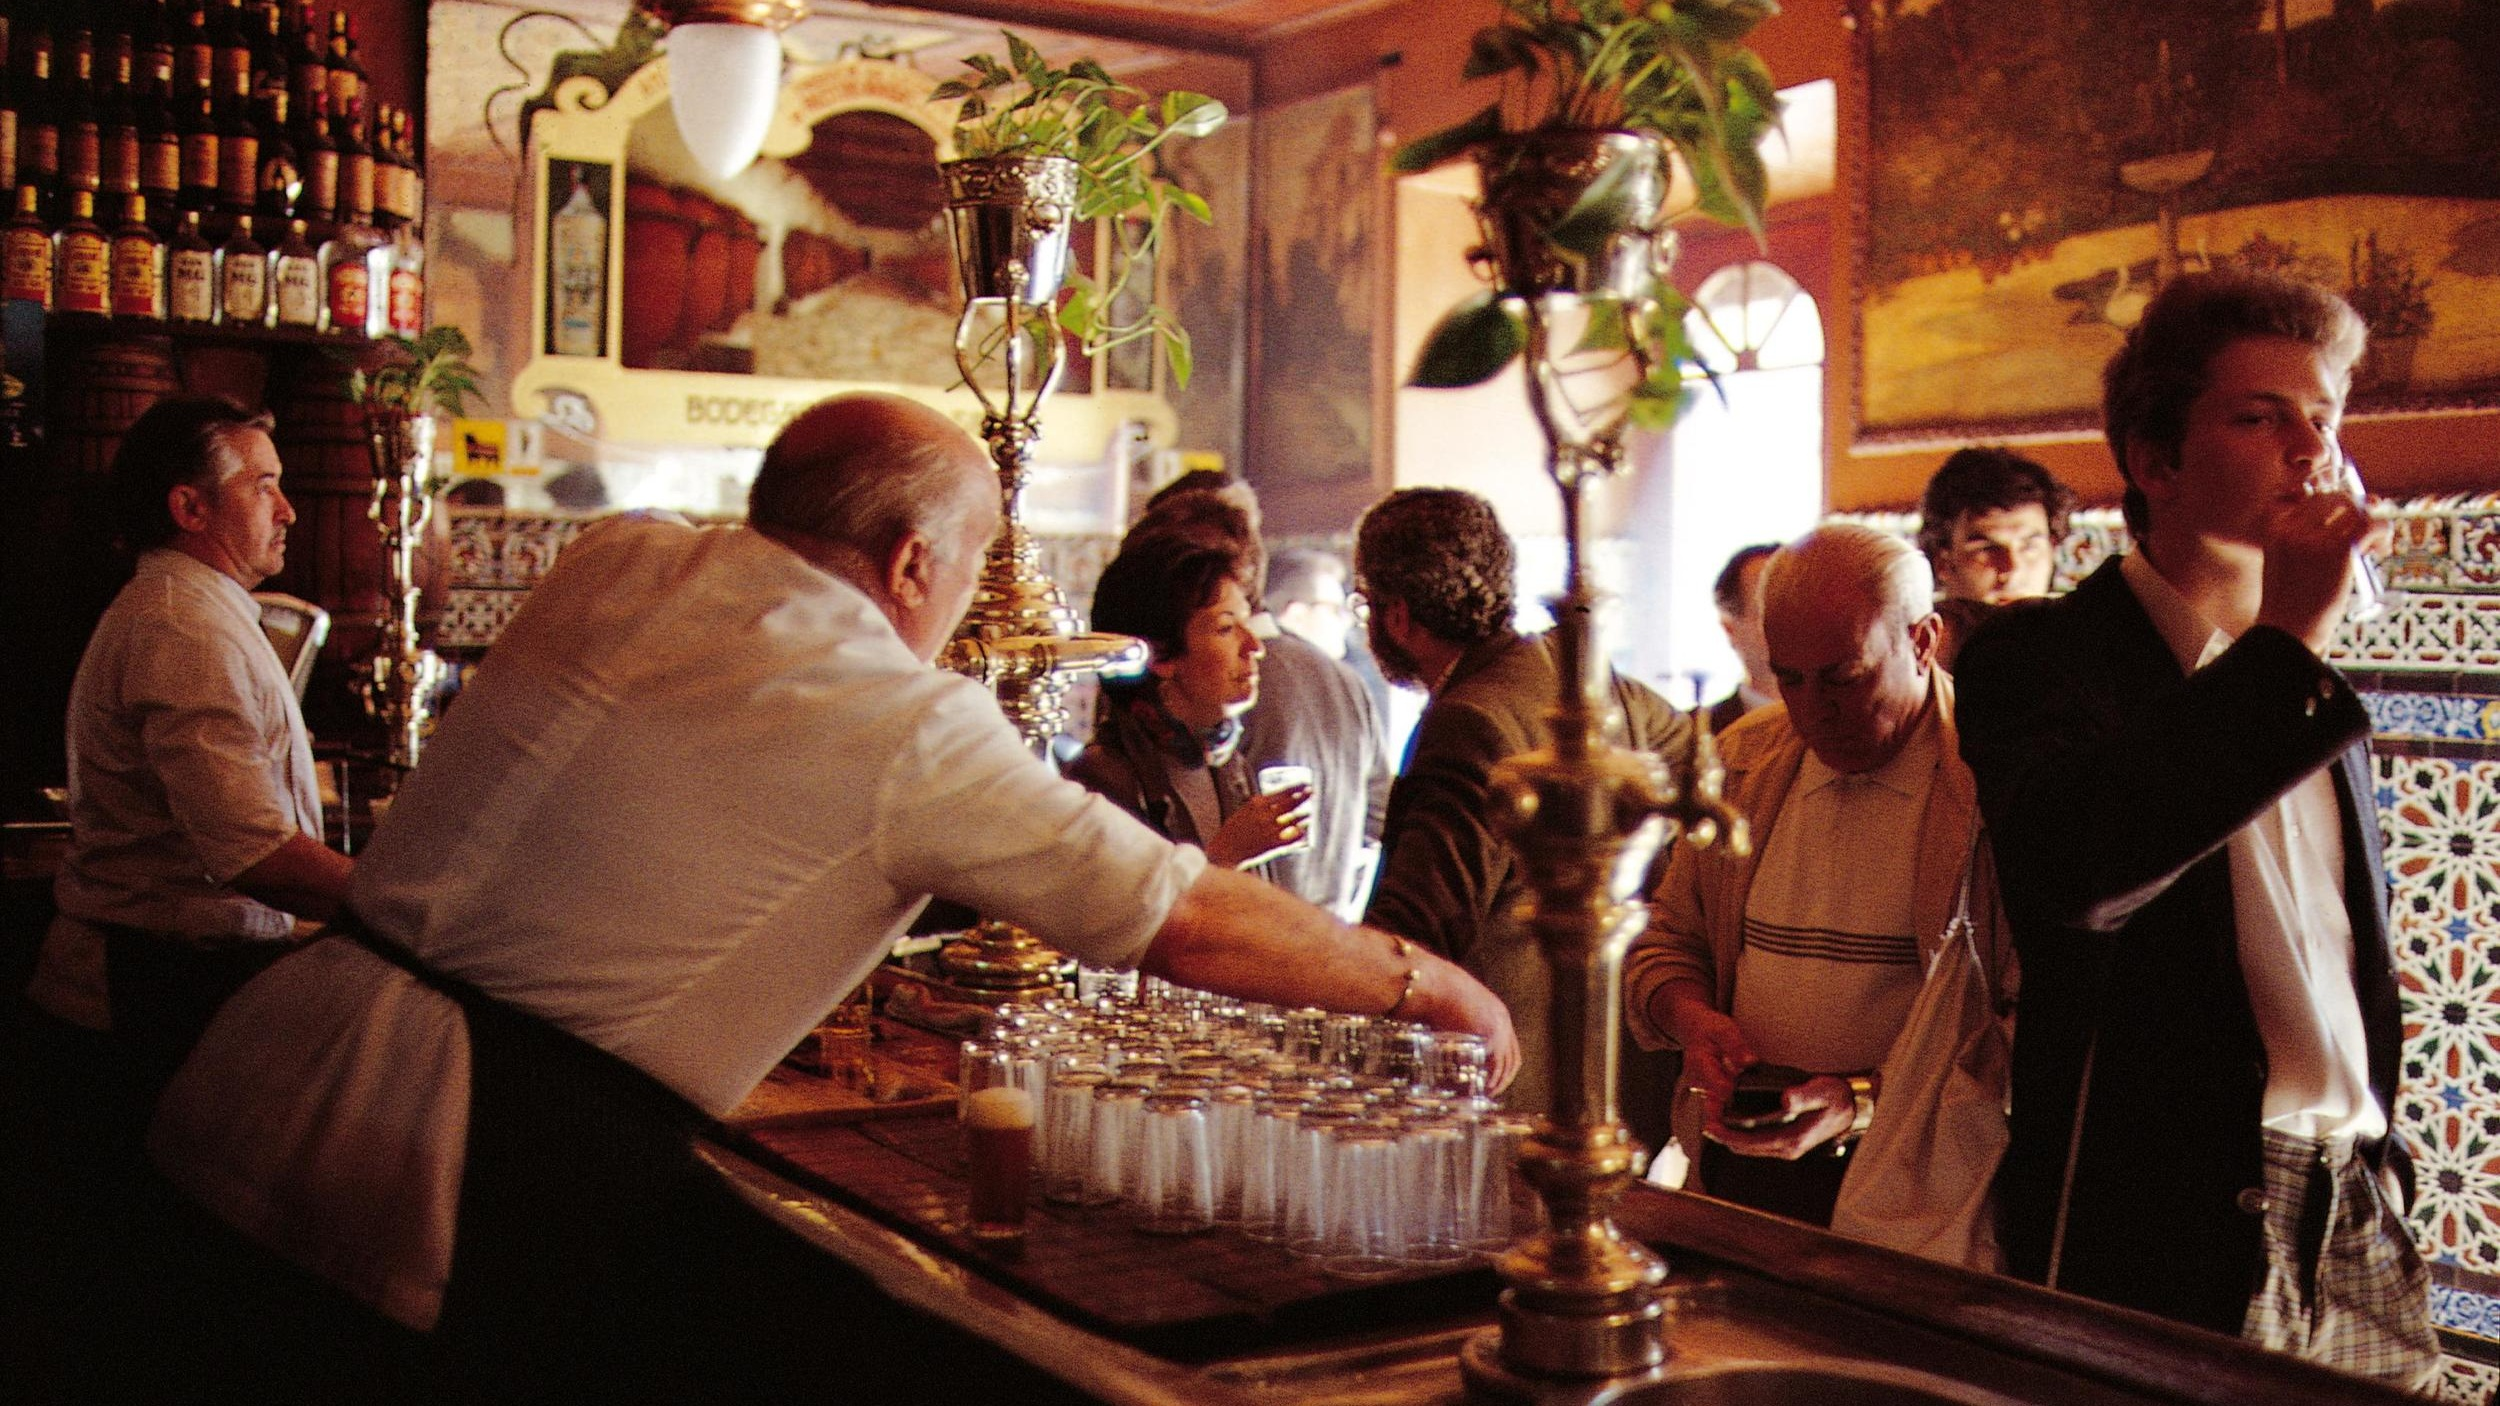 Old world vermouth bars - Timeless